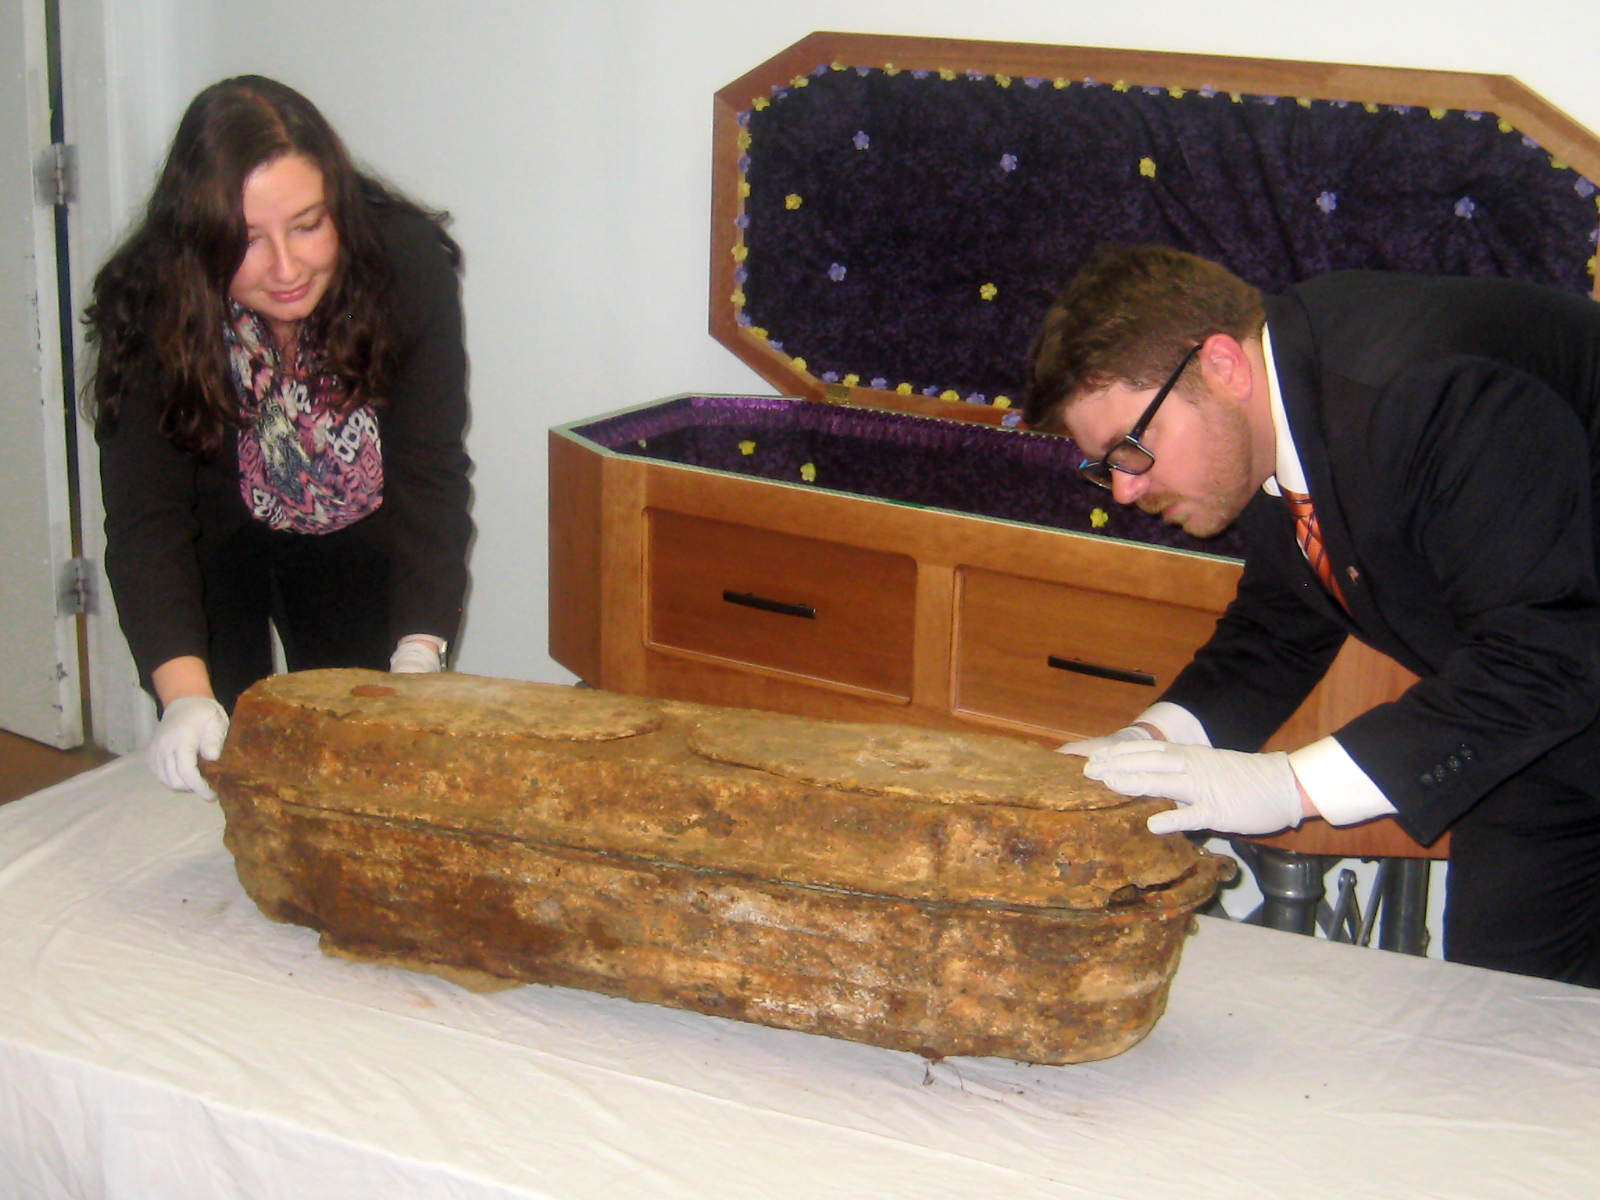 Santa Cruz Memorial apprentice embalmer Megan Mackenzie and funeral director Lincoln Krassow examine and place the girl's original casket into her new casket, which was specially built to accommodate the original burial container.